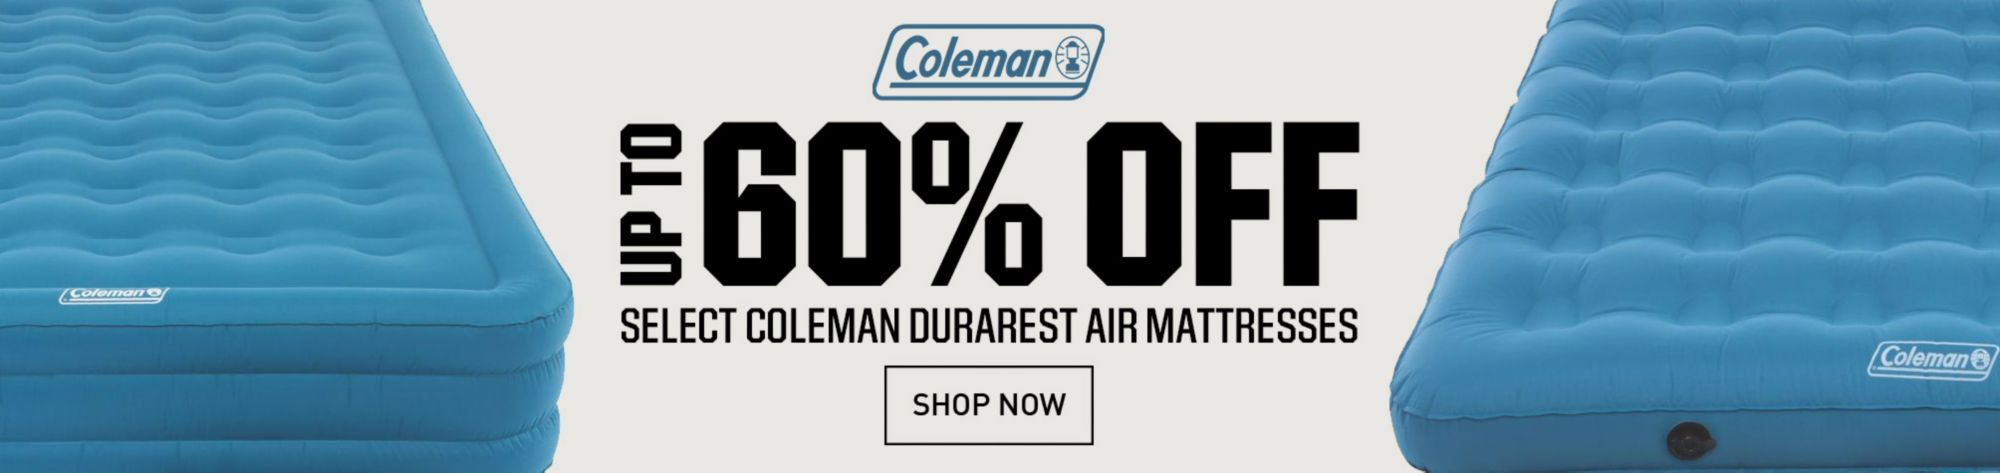 Shop Coleman Air Mattresses